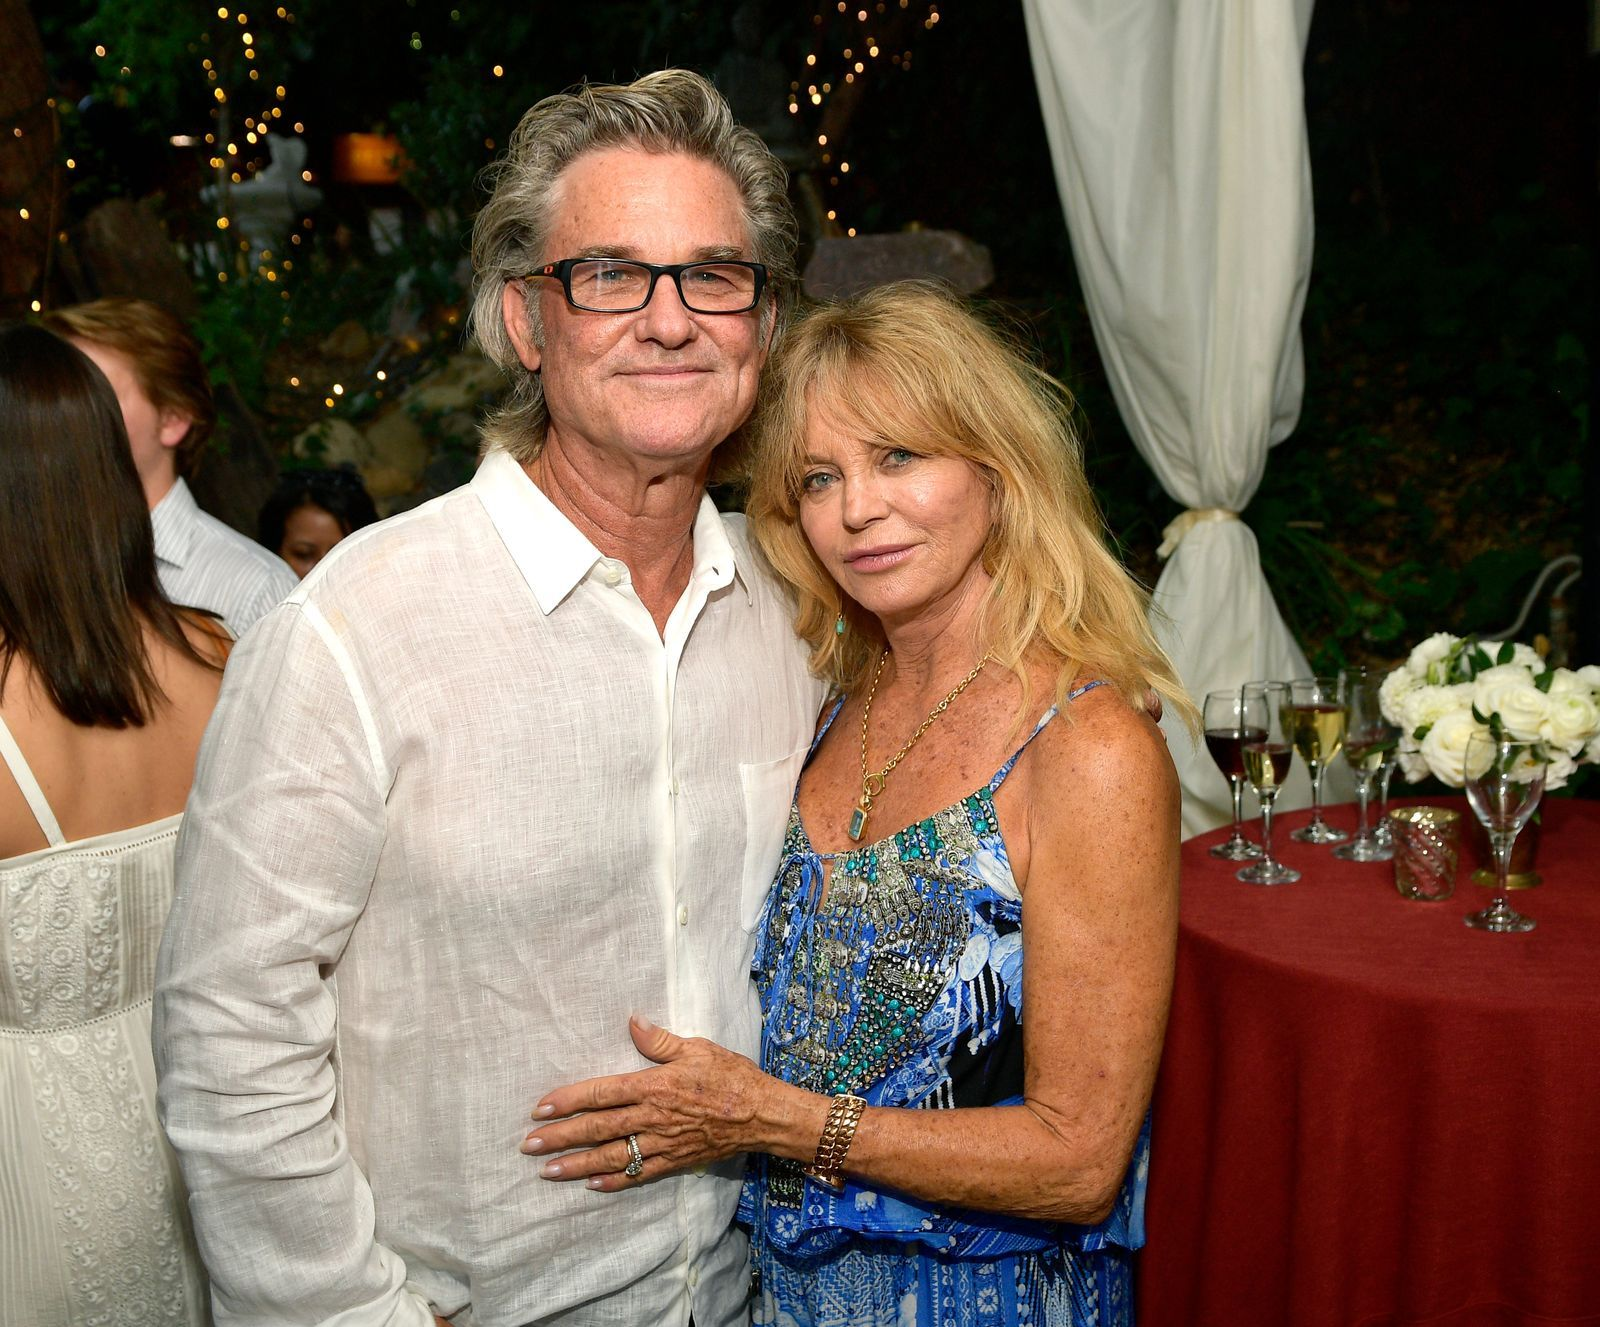 Goldie Hawn Shared The Most Heartfelt Tribute To Her Angel Kurt Russell Goldie Hawn Kurt Russell Goldie Hawn Famous Couples